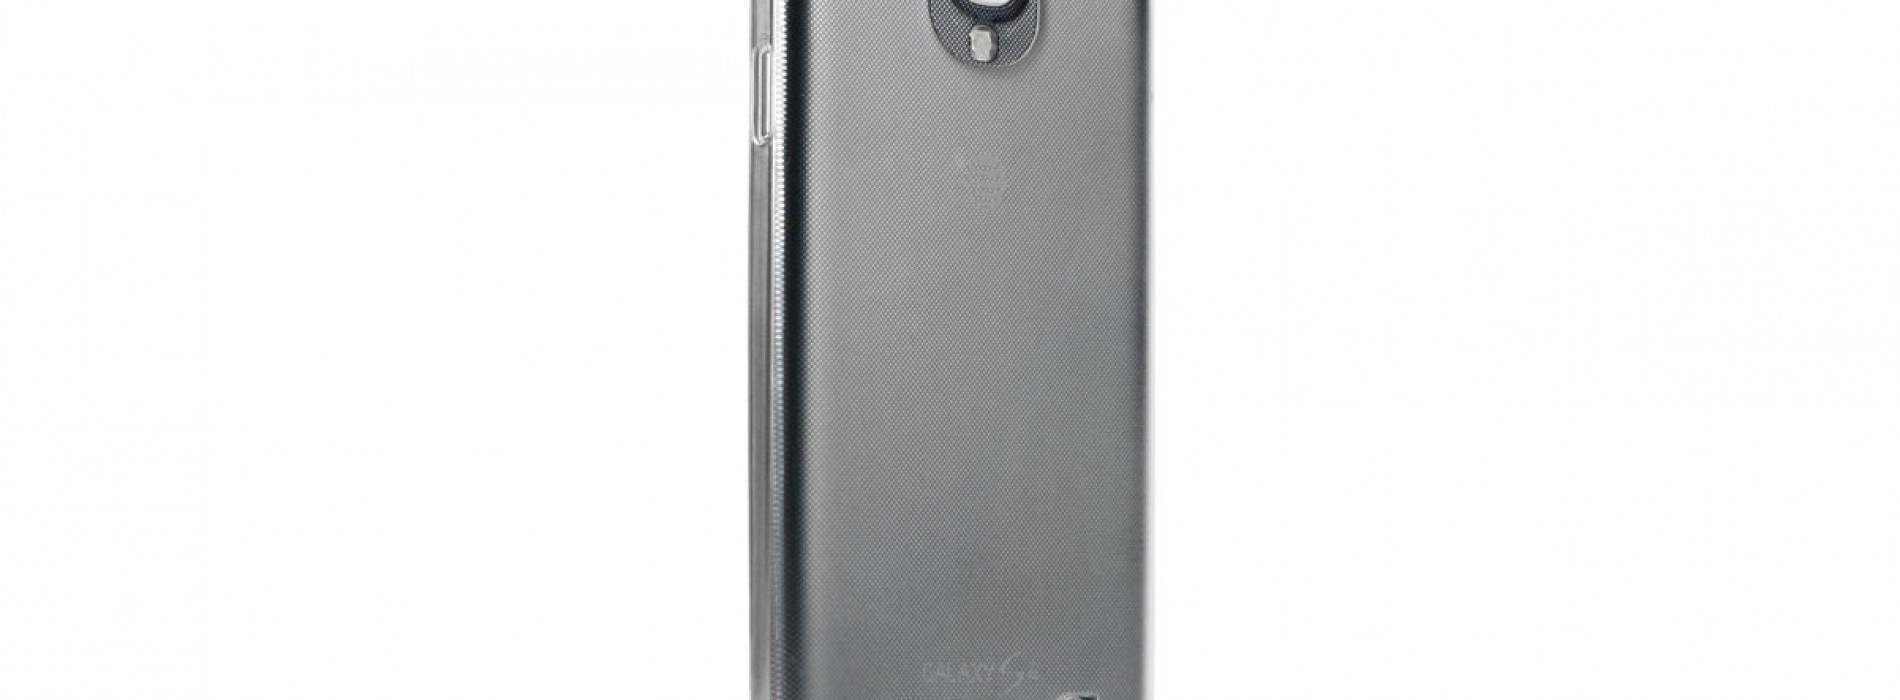 Booq Galaxy S4 Complete Protection Kit review